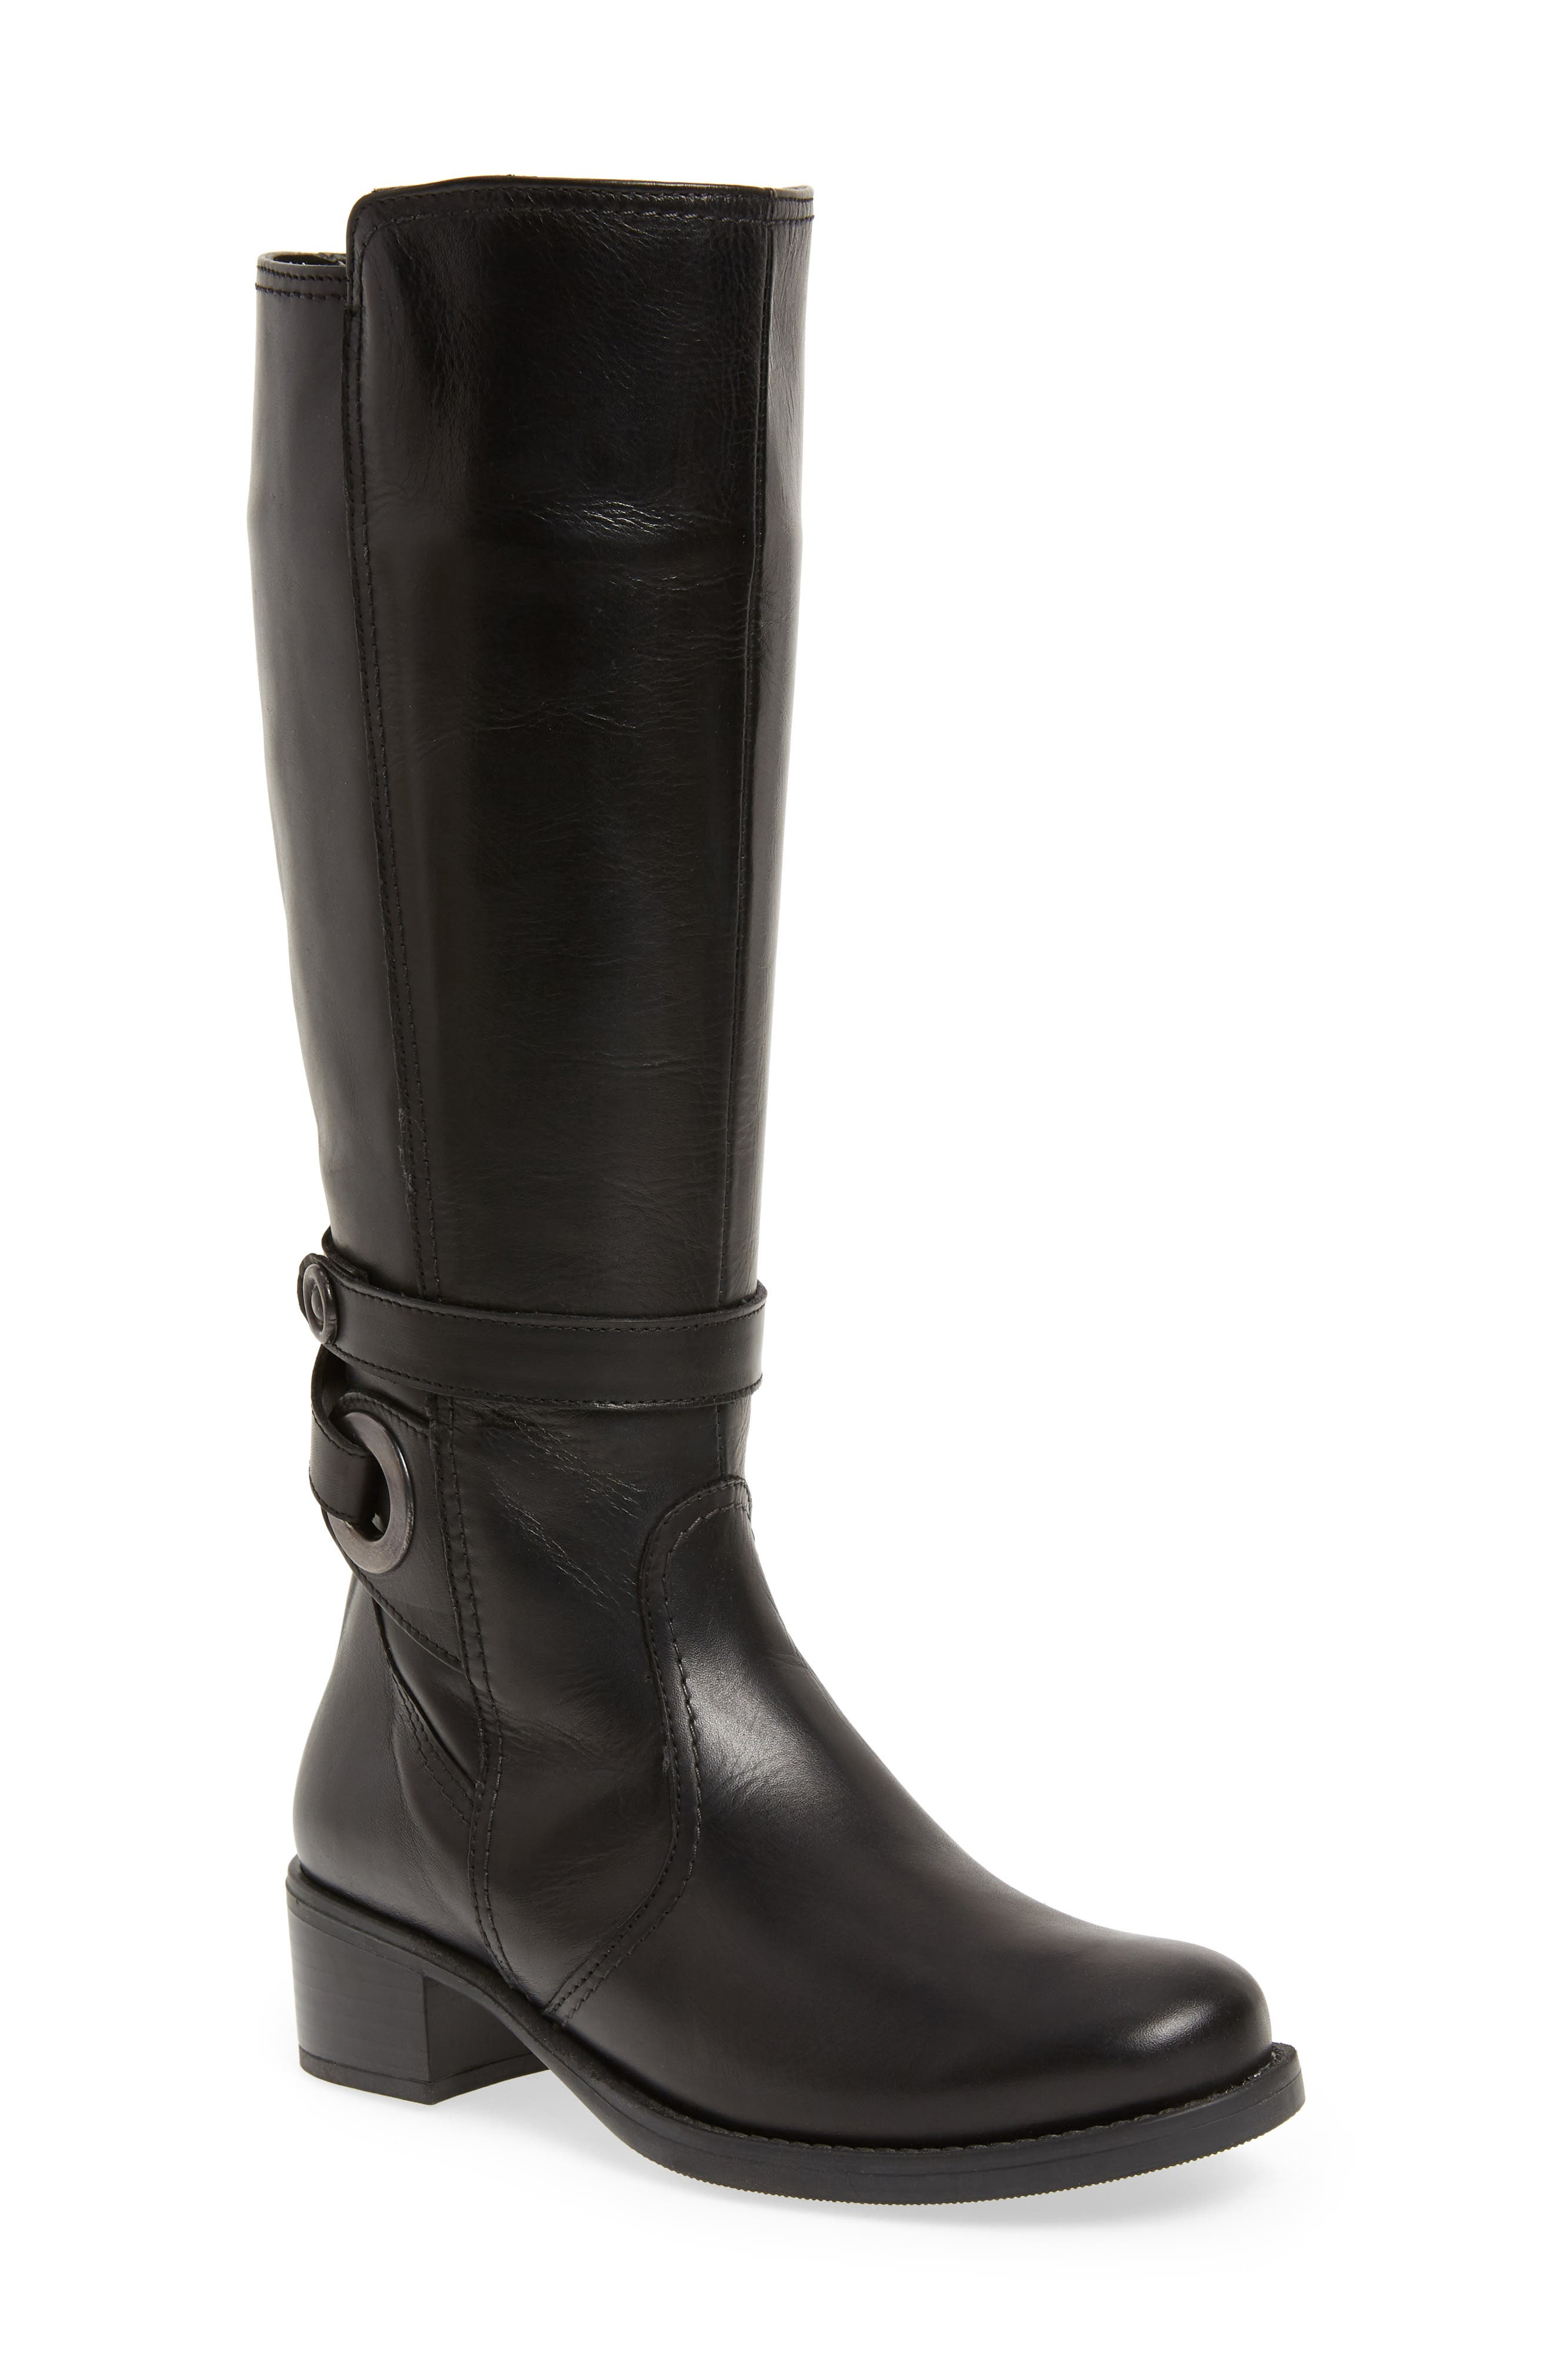 David Tate Portofino Boot W - Black